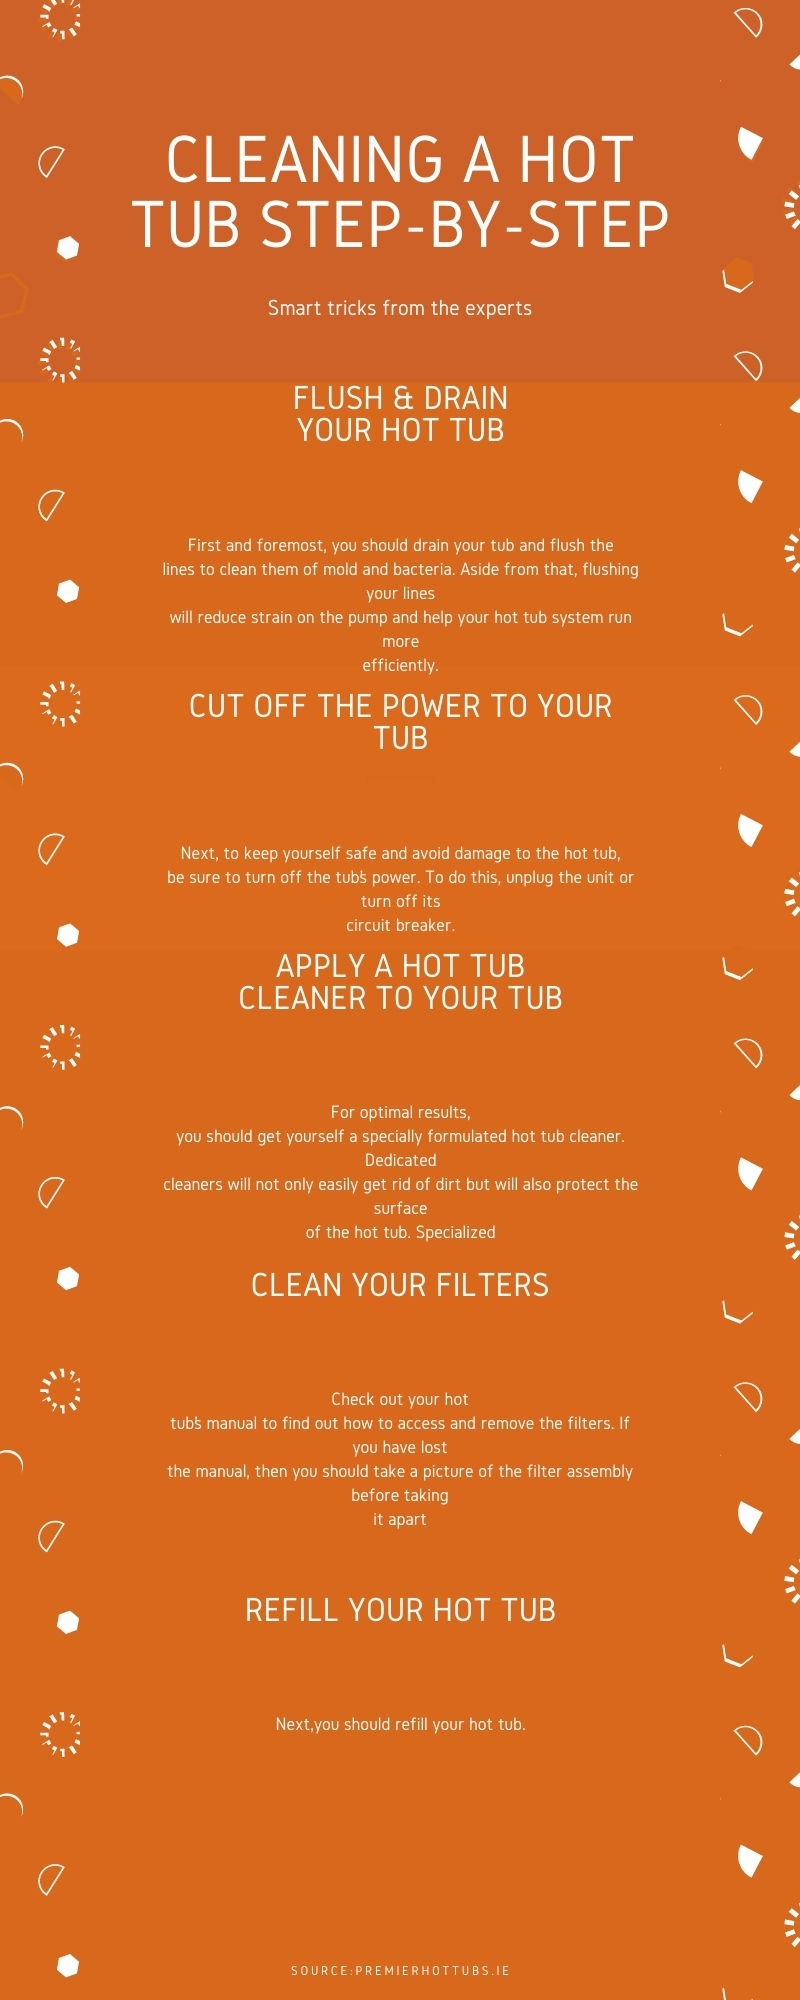 Cleaning A Hot Tub Step-By-Step Guide